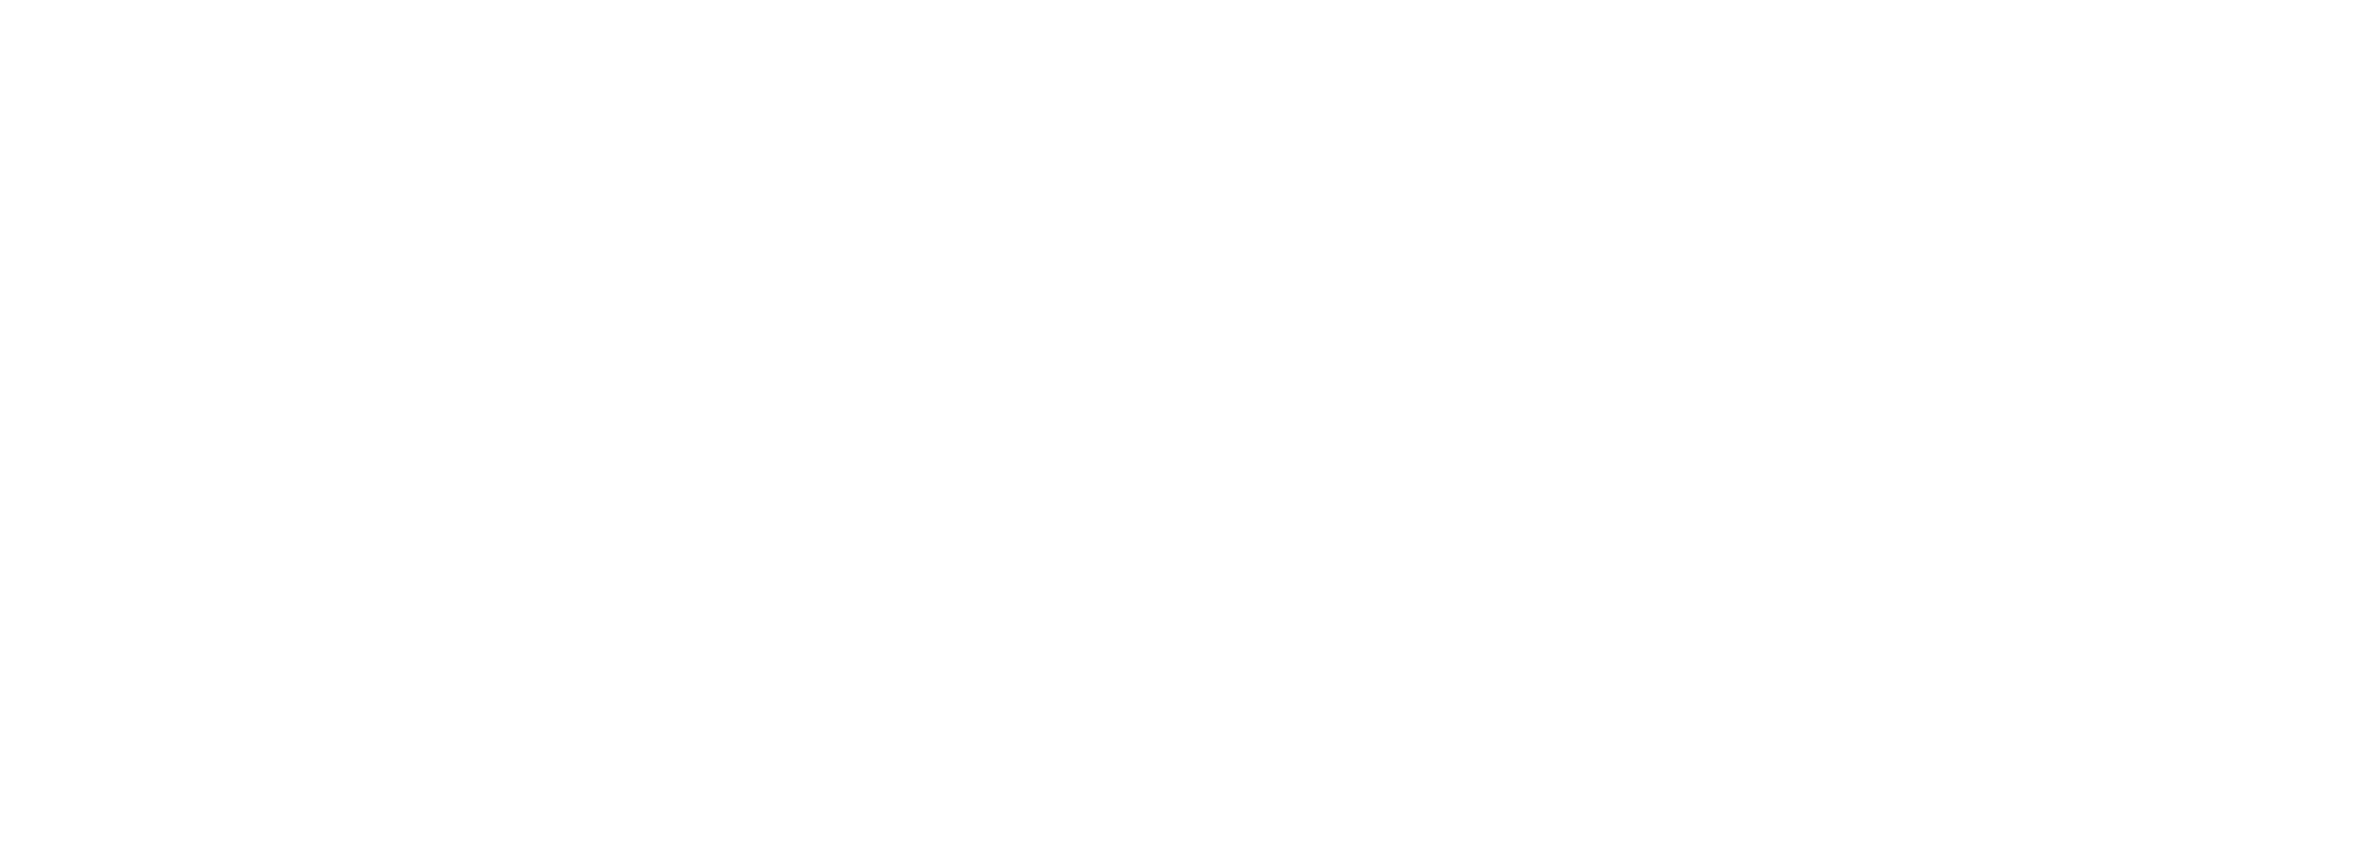 Université Bordeaux